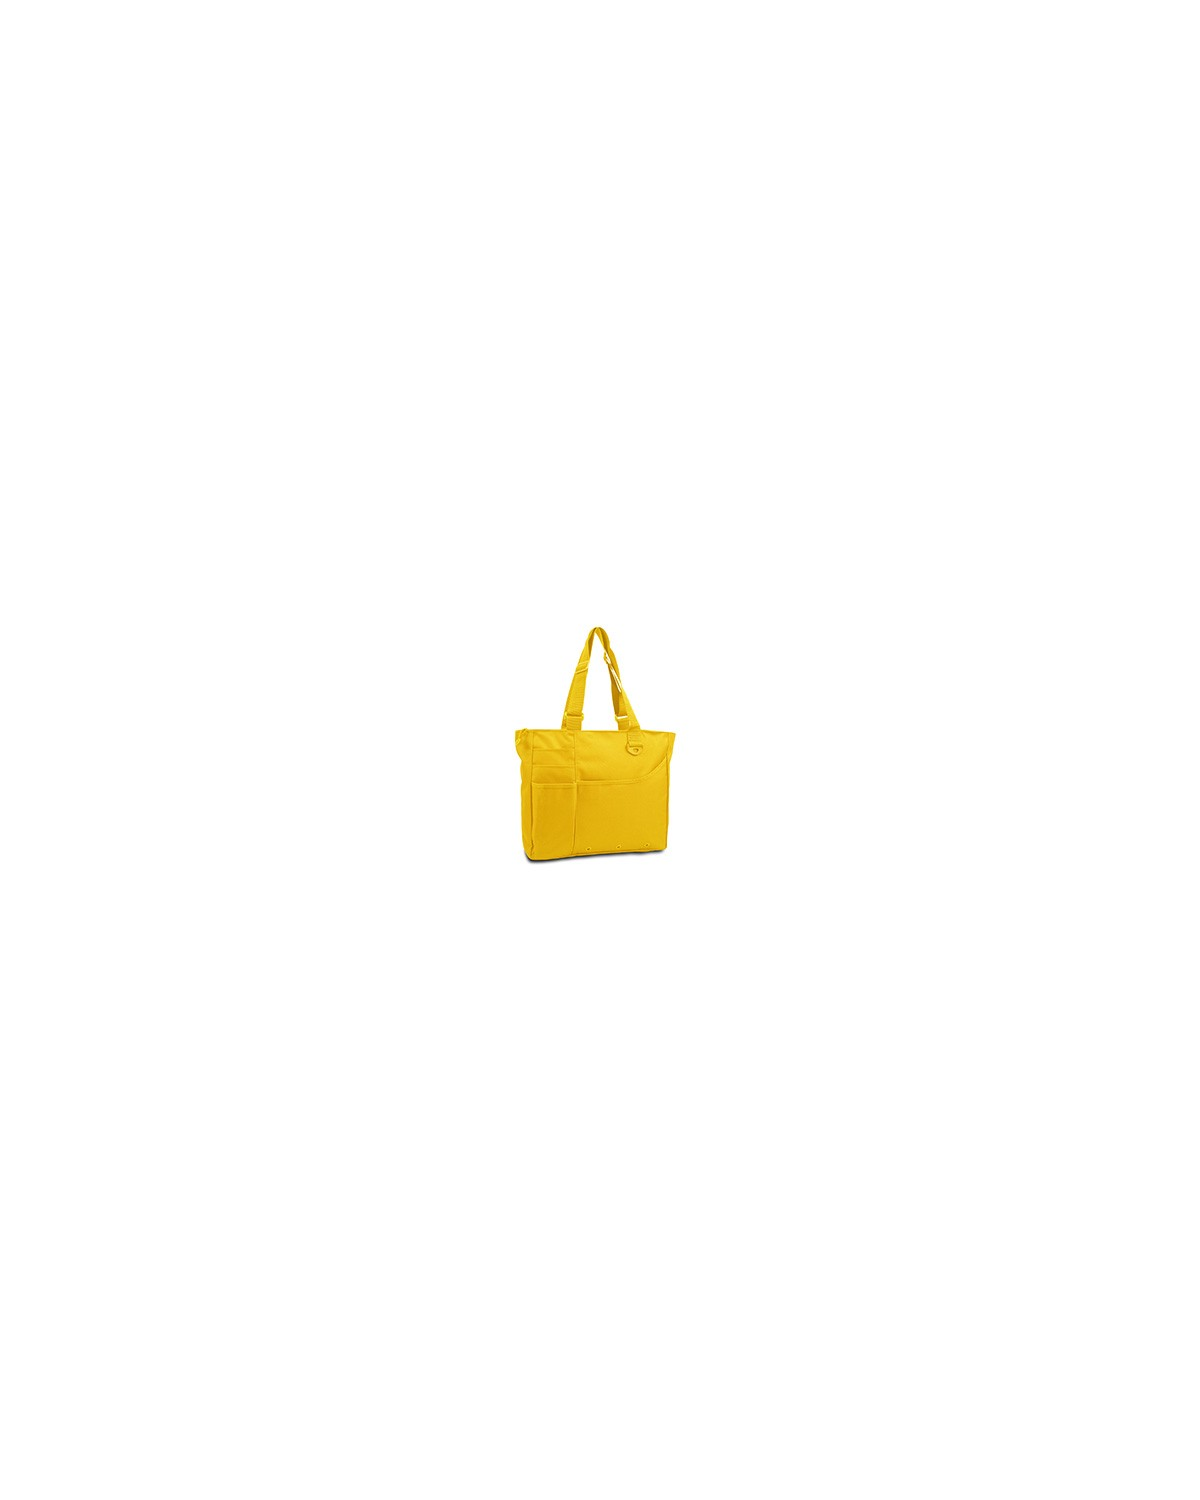 8811 Liberty Bags BRIGHT YELLOW